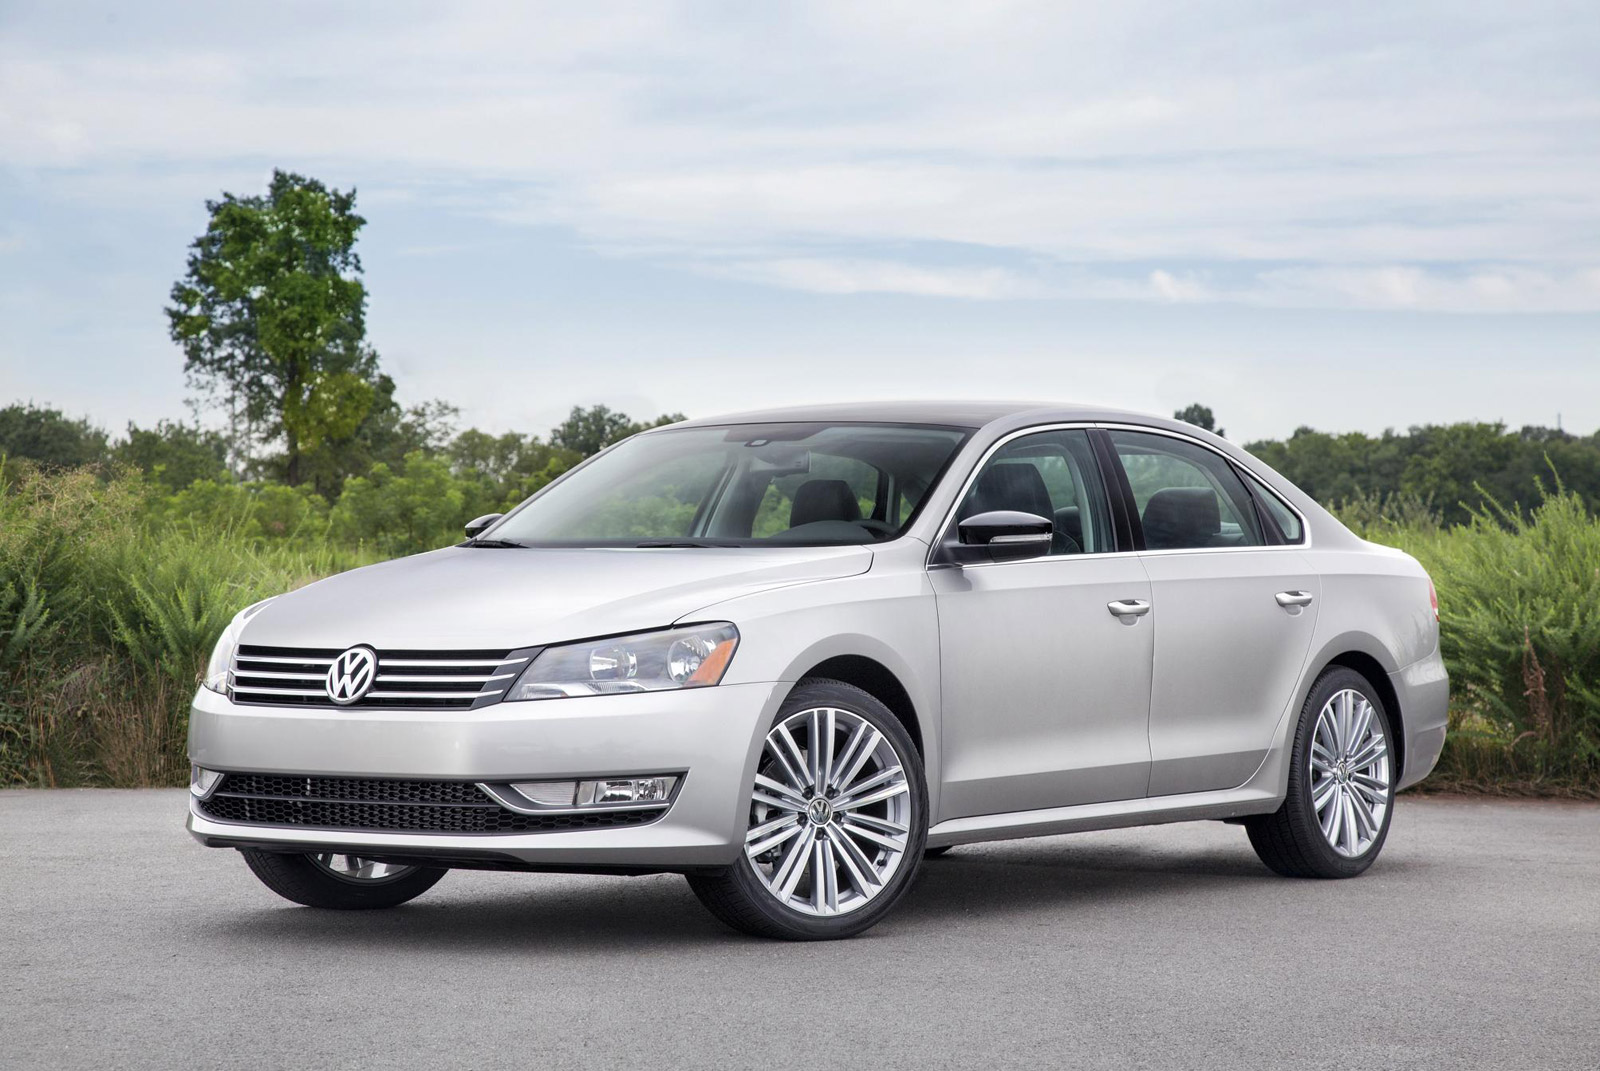 2014 Volkswagen Passat (VW) Review, Ratings, Specs, Prices ...